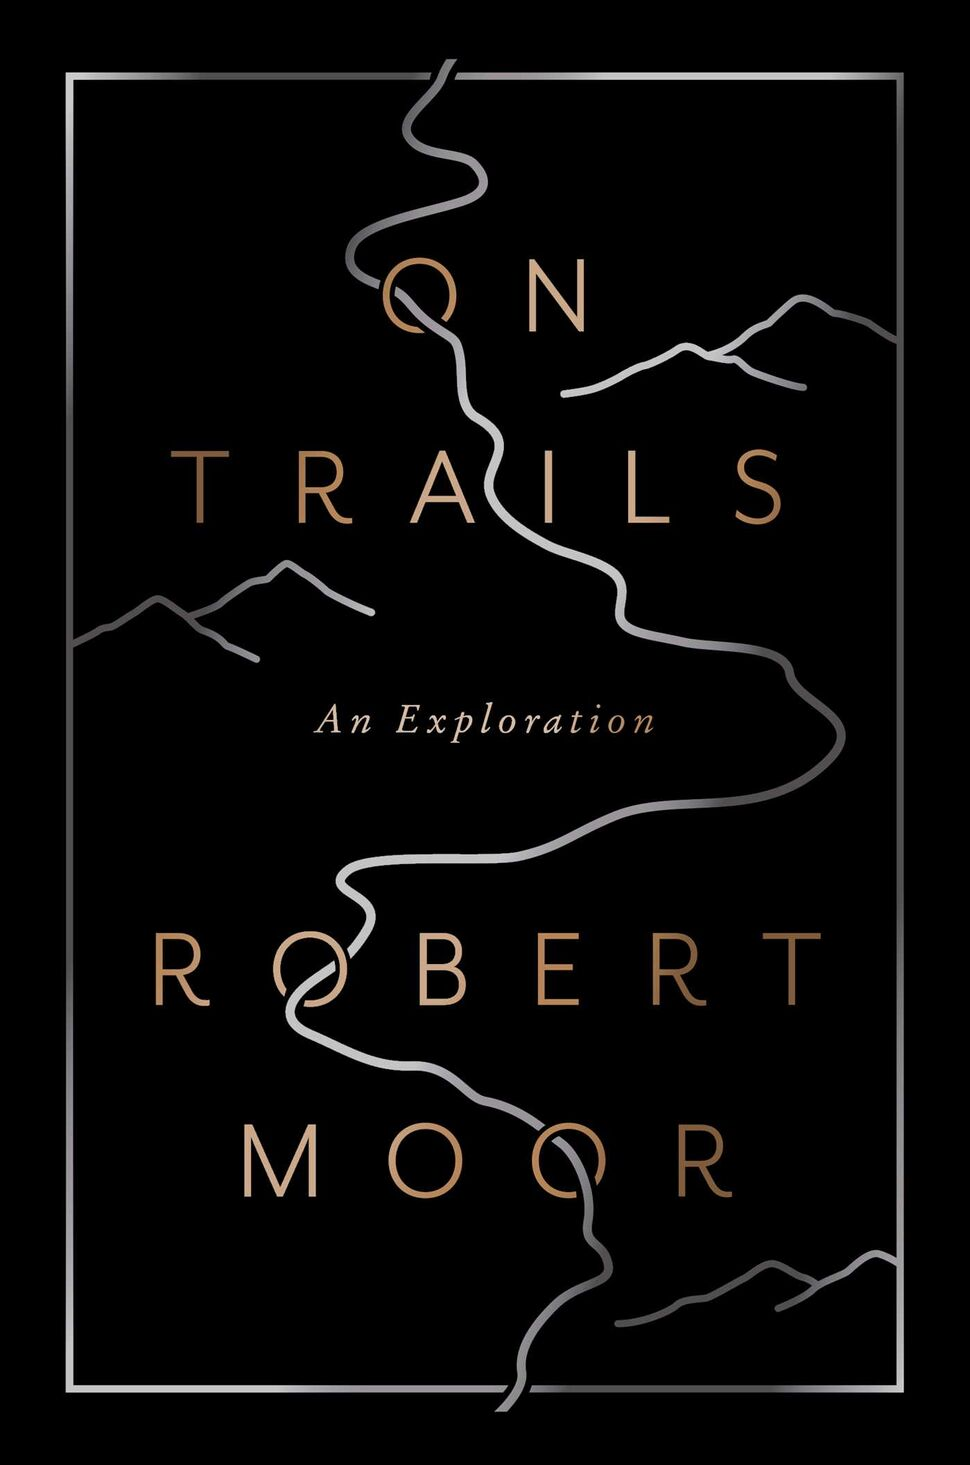 <h3>On Trails: An Exploration</h3> <br/> By Robert Moor Navigating time, place and even species, journalist-turned-author Robert Moor nimbly considers the wondrous, universal nature of trails. Following the dots, breadcrumbs, pheromones and footfall (here, Moor says, the medium is not the message), we discover that trails are the collective wisdom of the world's creatures… including us.  — Gail Perry